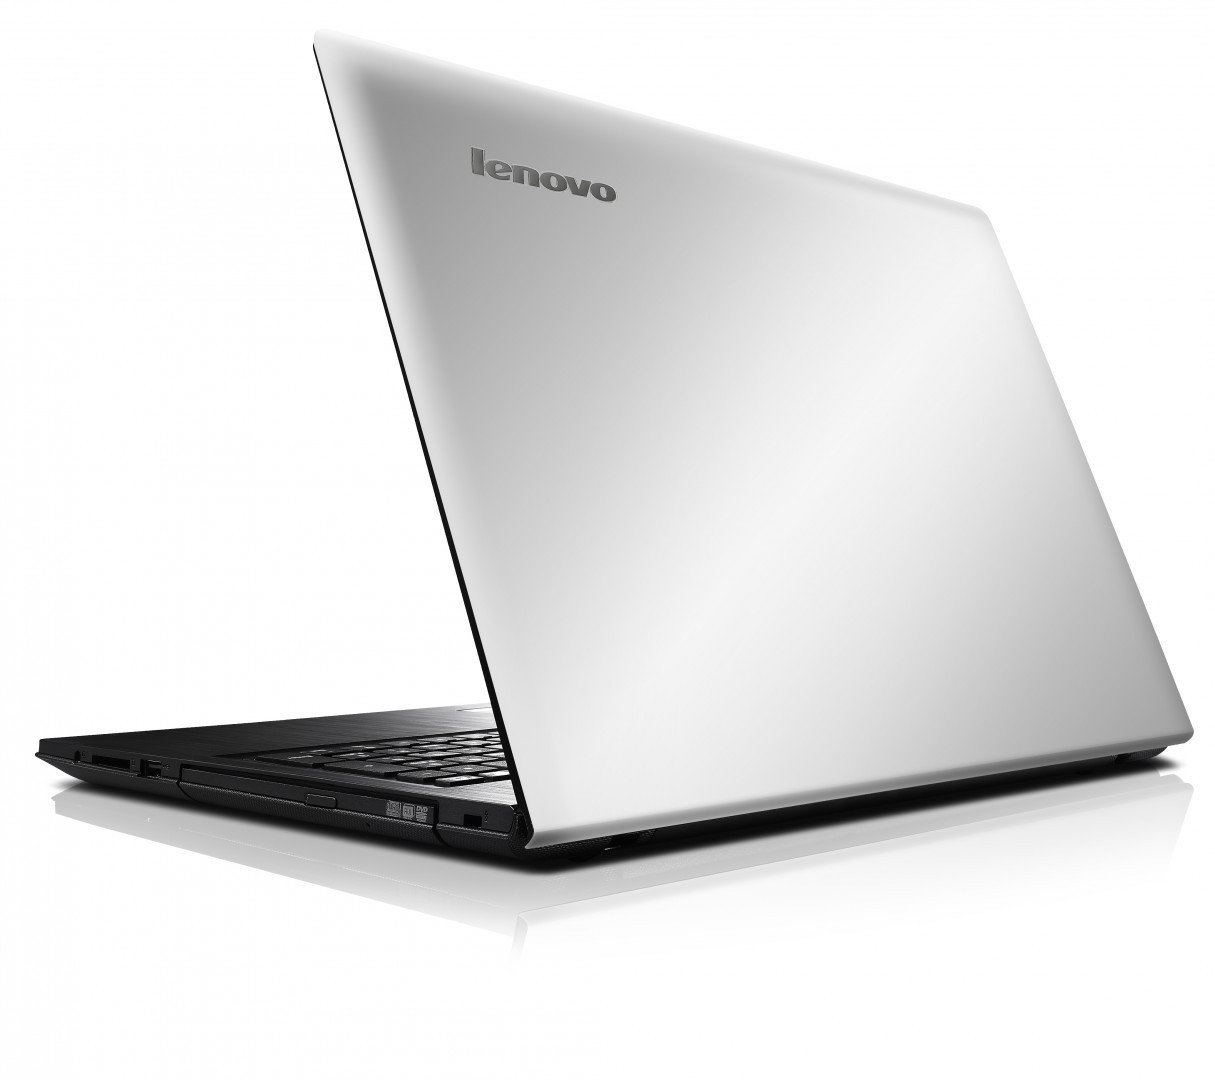 "Lenovo Essential G50-80 15,6"", Core i3 1,9GHz, 4GB RAM, 1000GB HDD (80L000E6PB)"